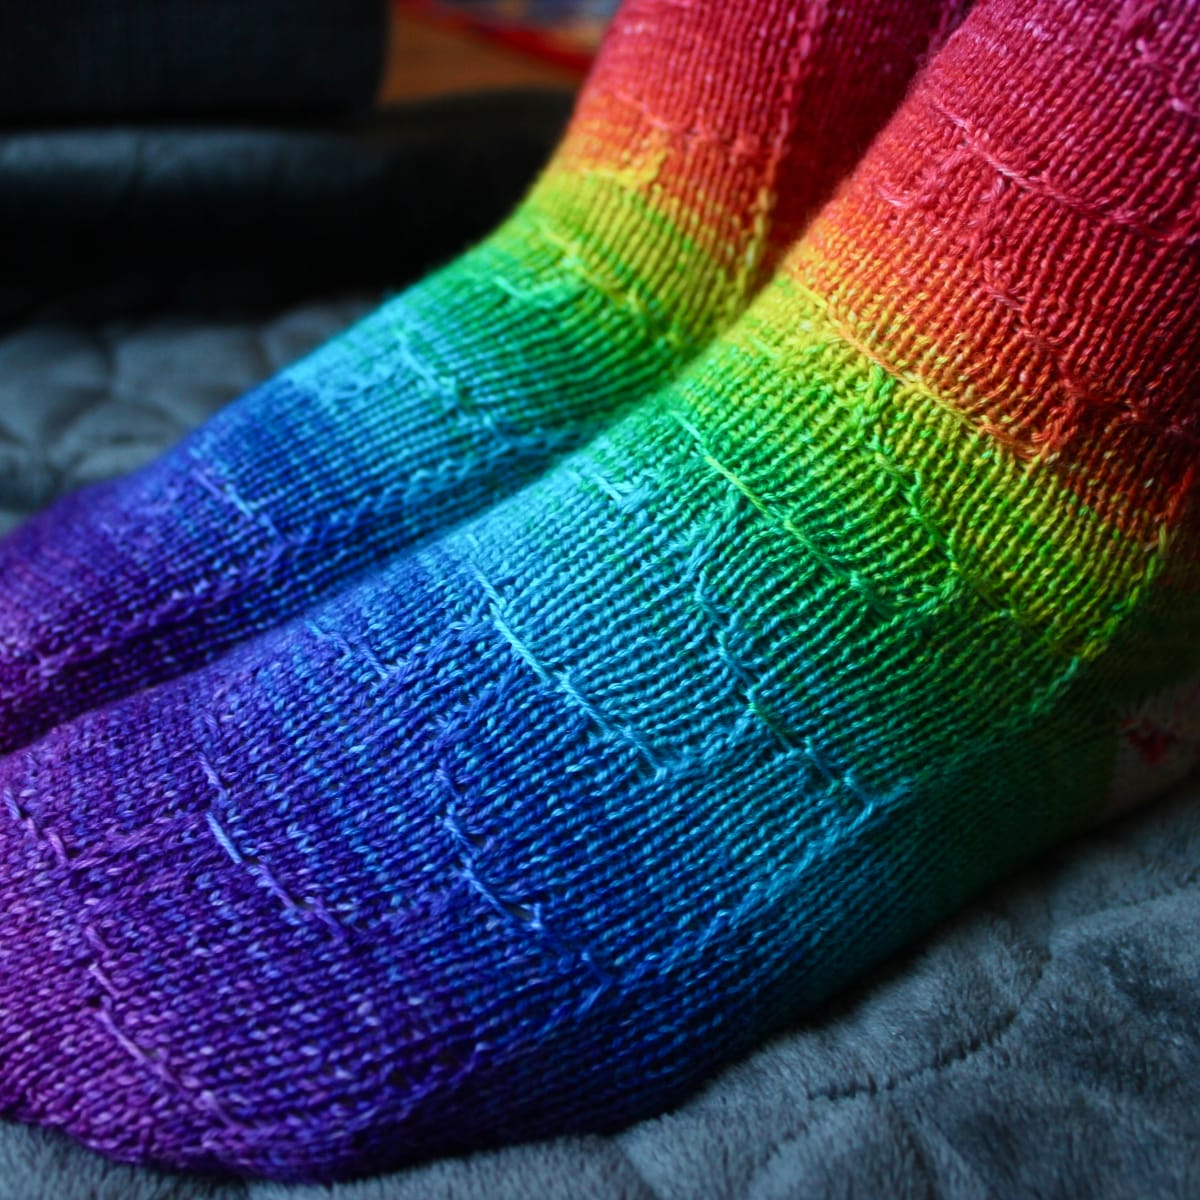 Side view of rainbow socks with subtle surface detail.